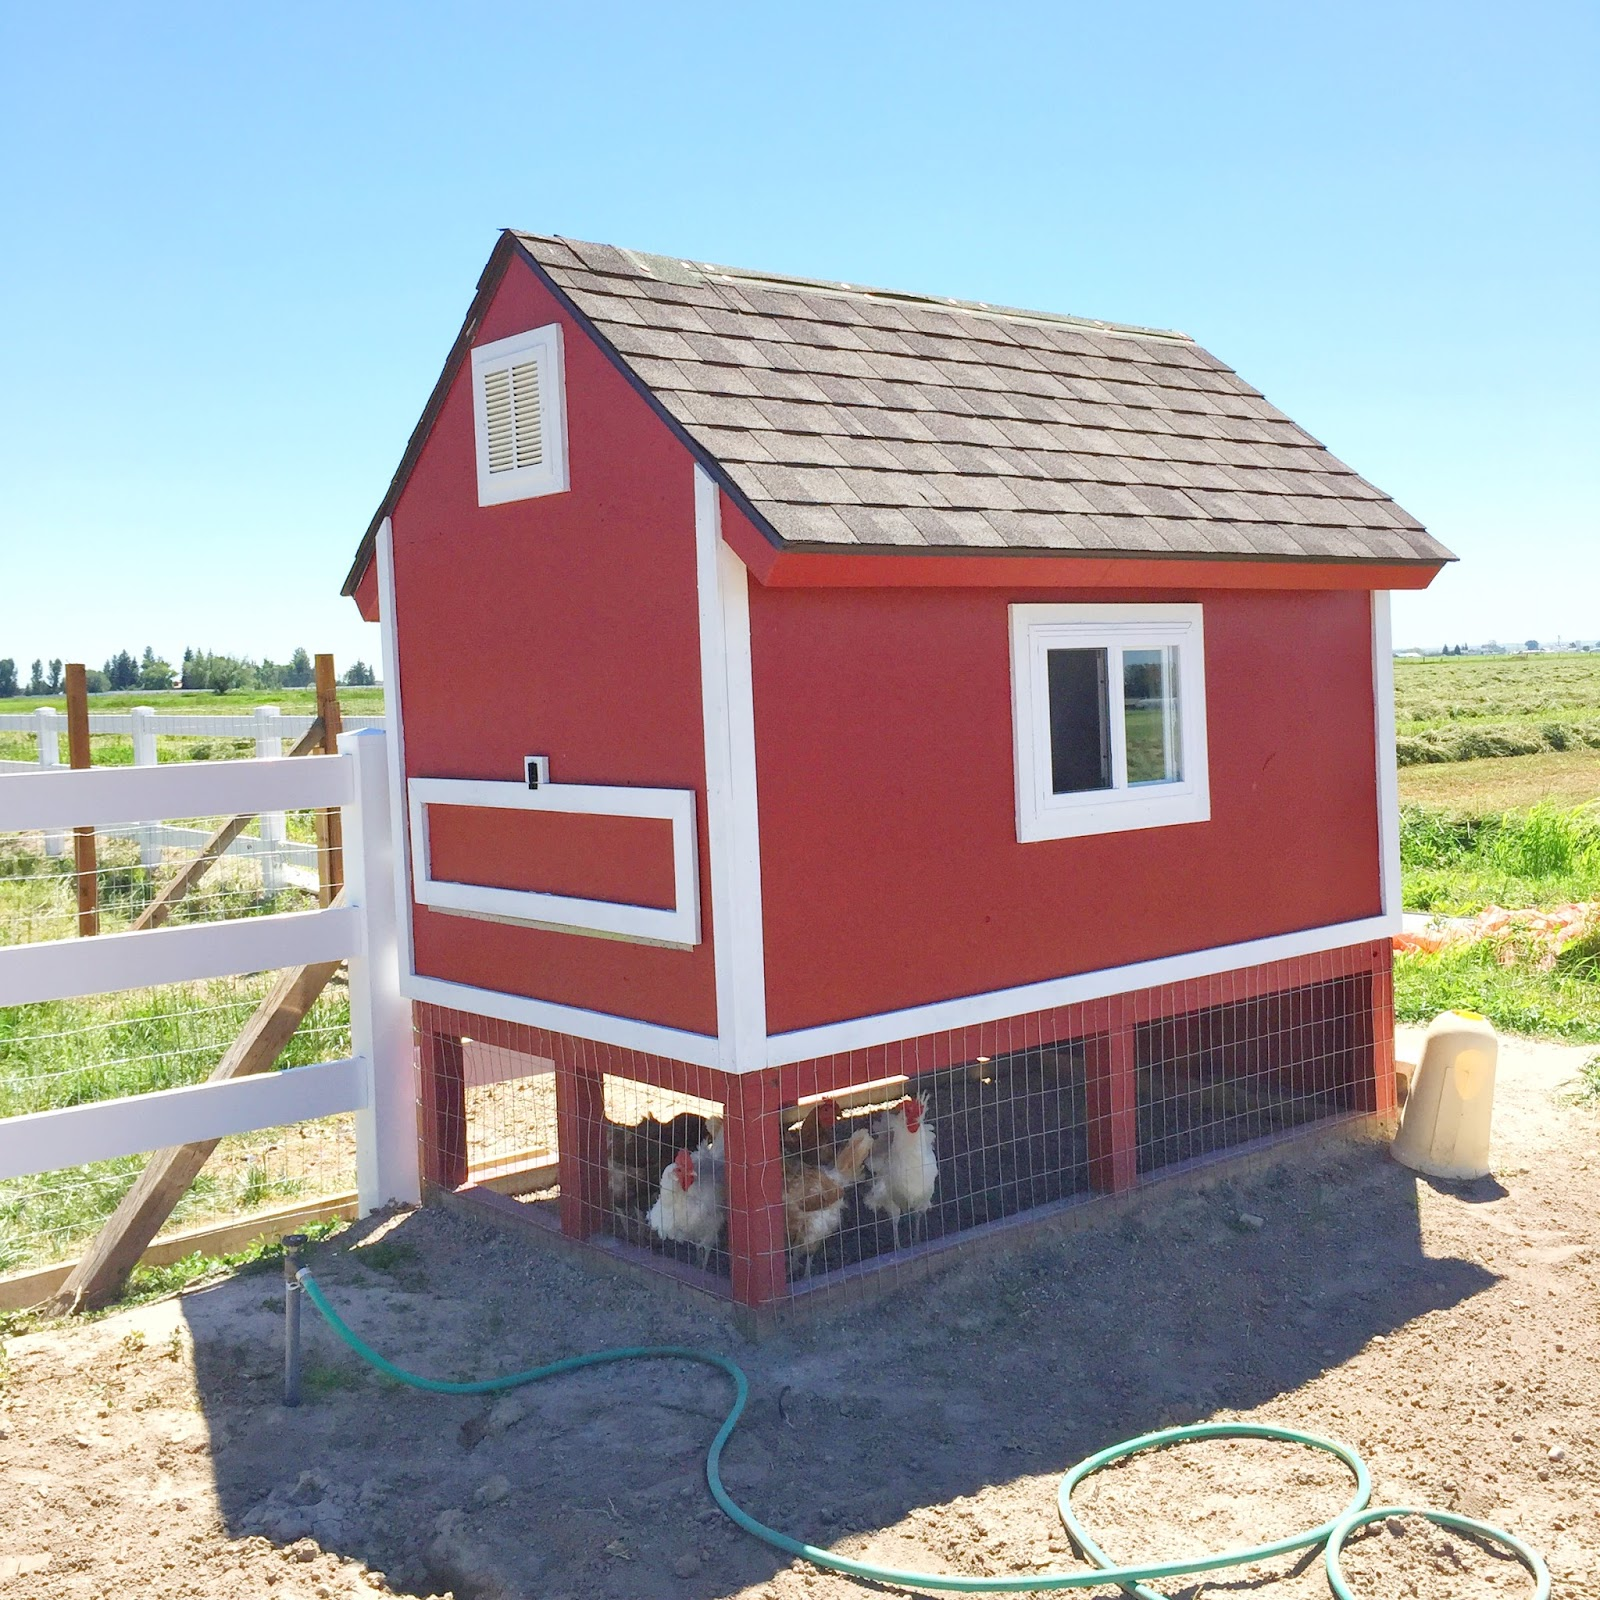 How to build a chicken coop from pallets a vision to for Plans for chicken coops